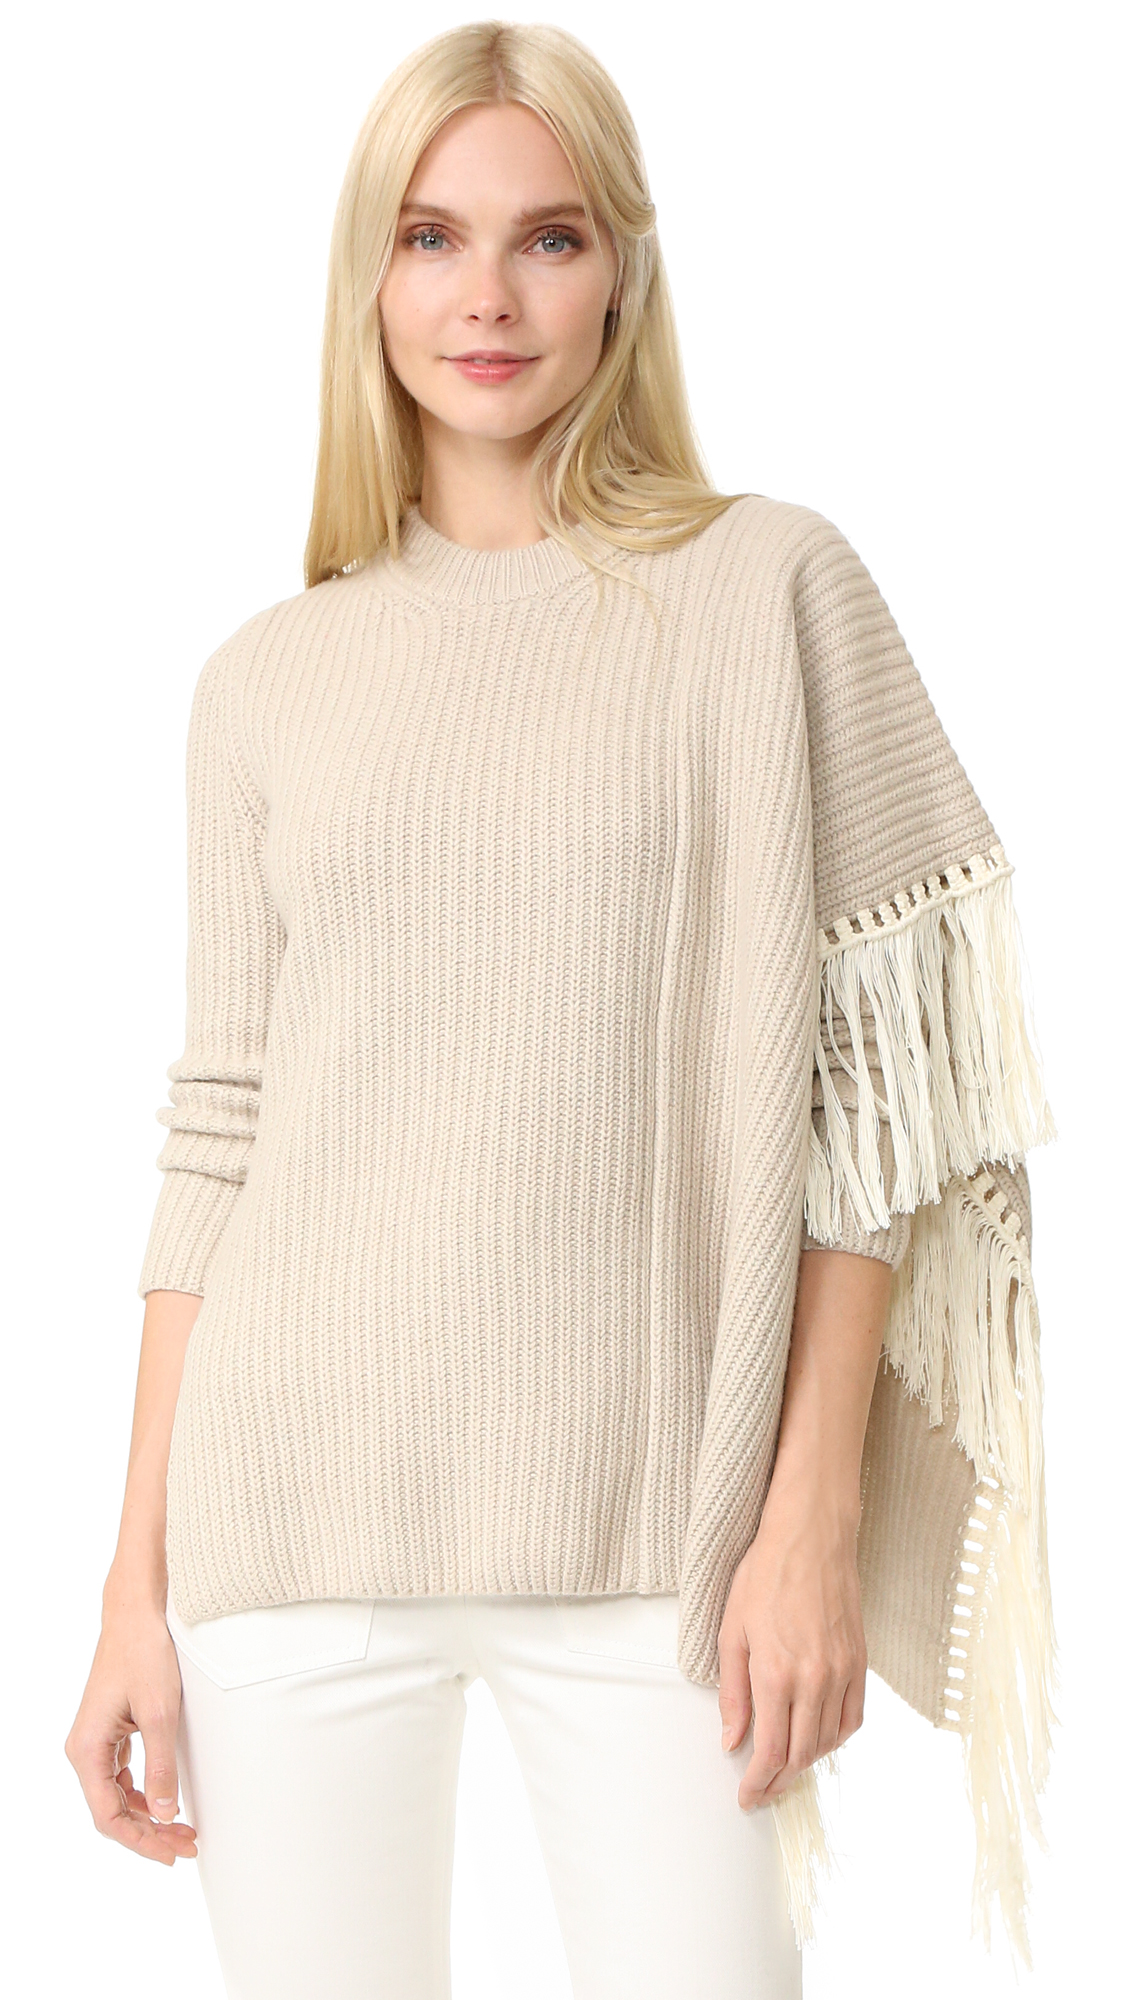 Edun Fringe Oversized Sweater - Ecru at Shopbop